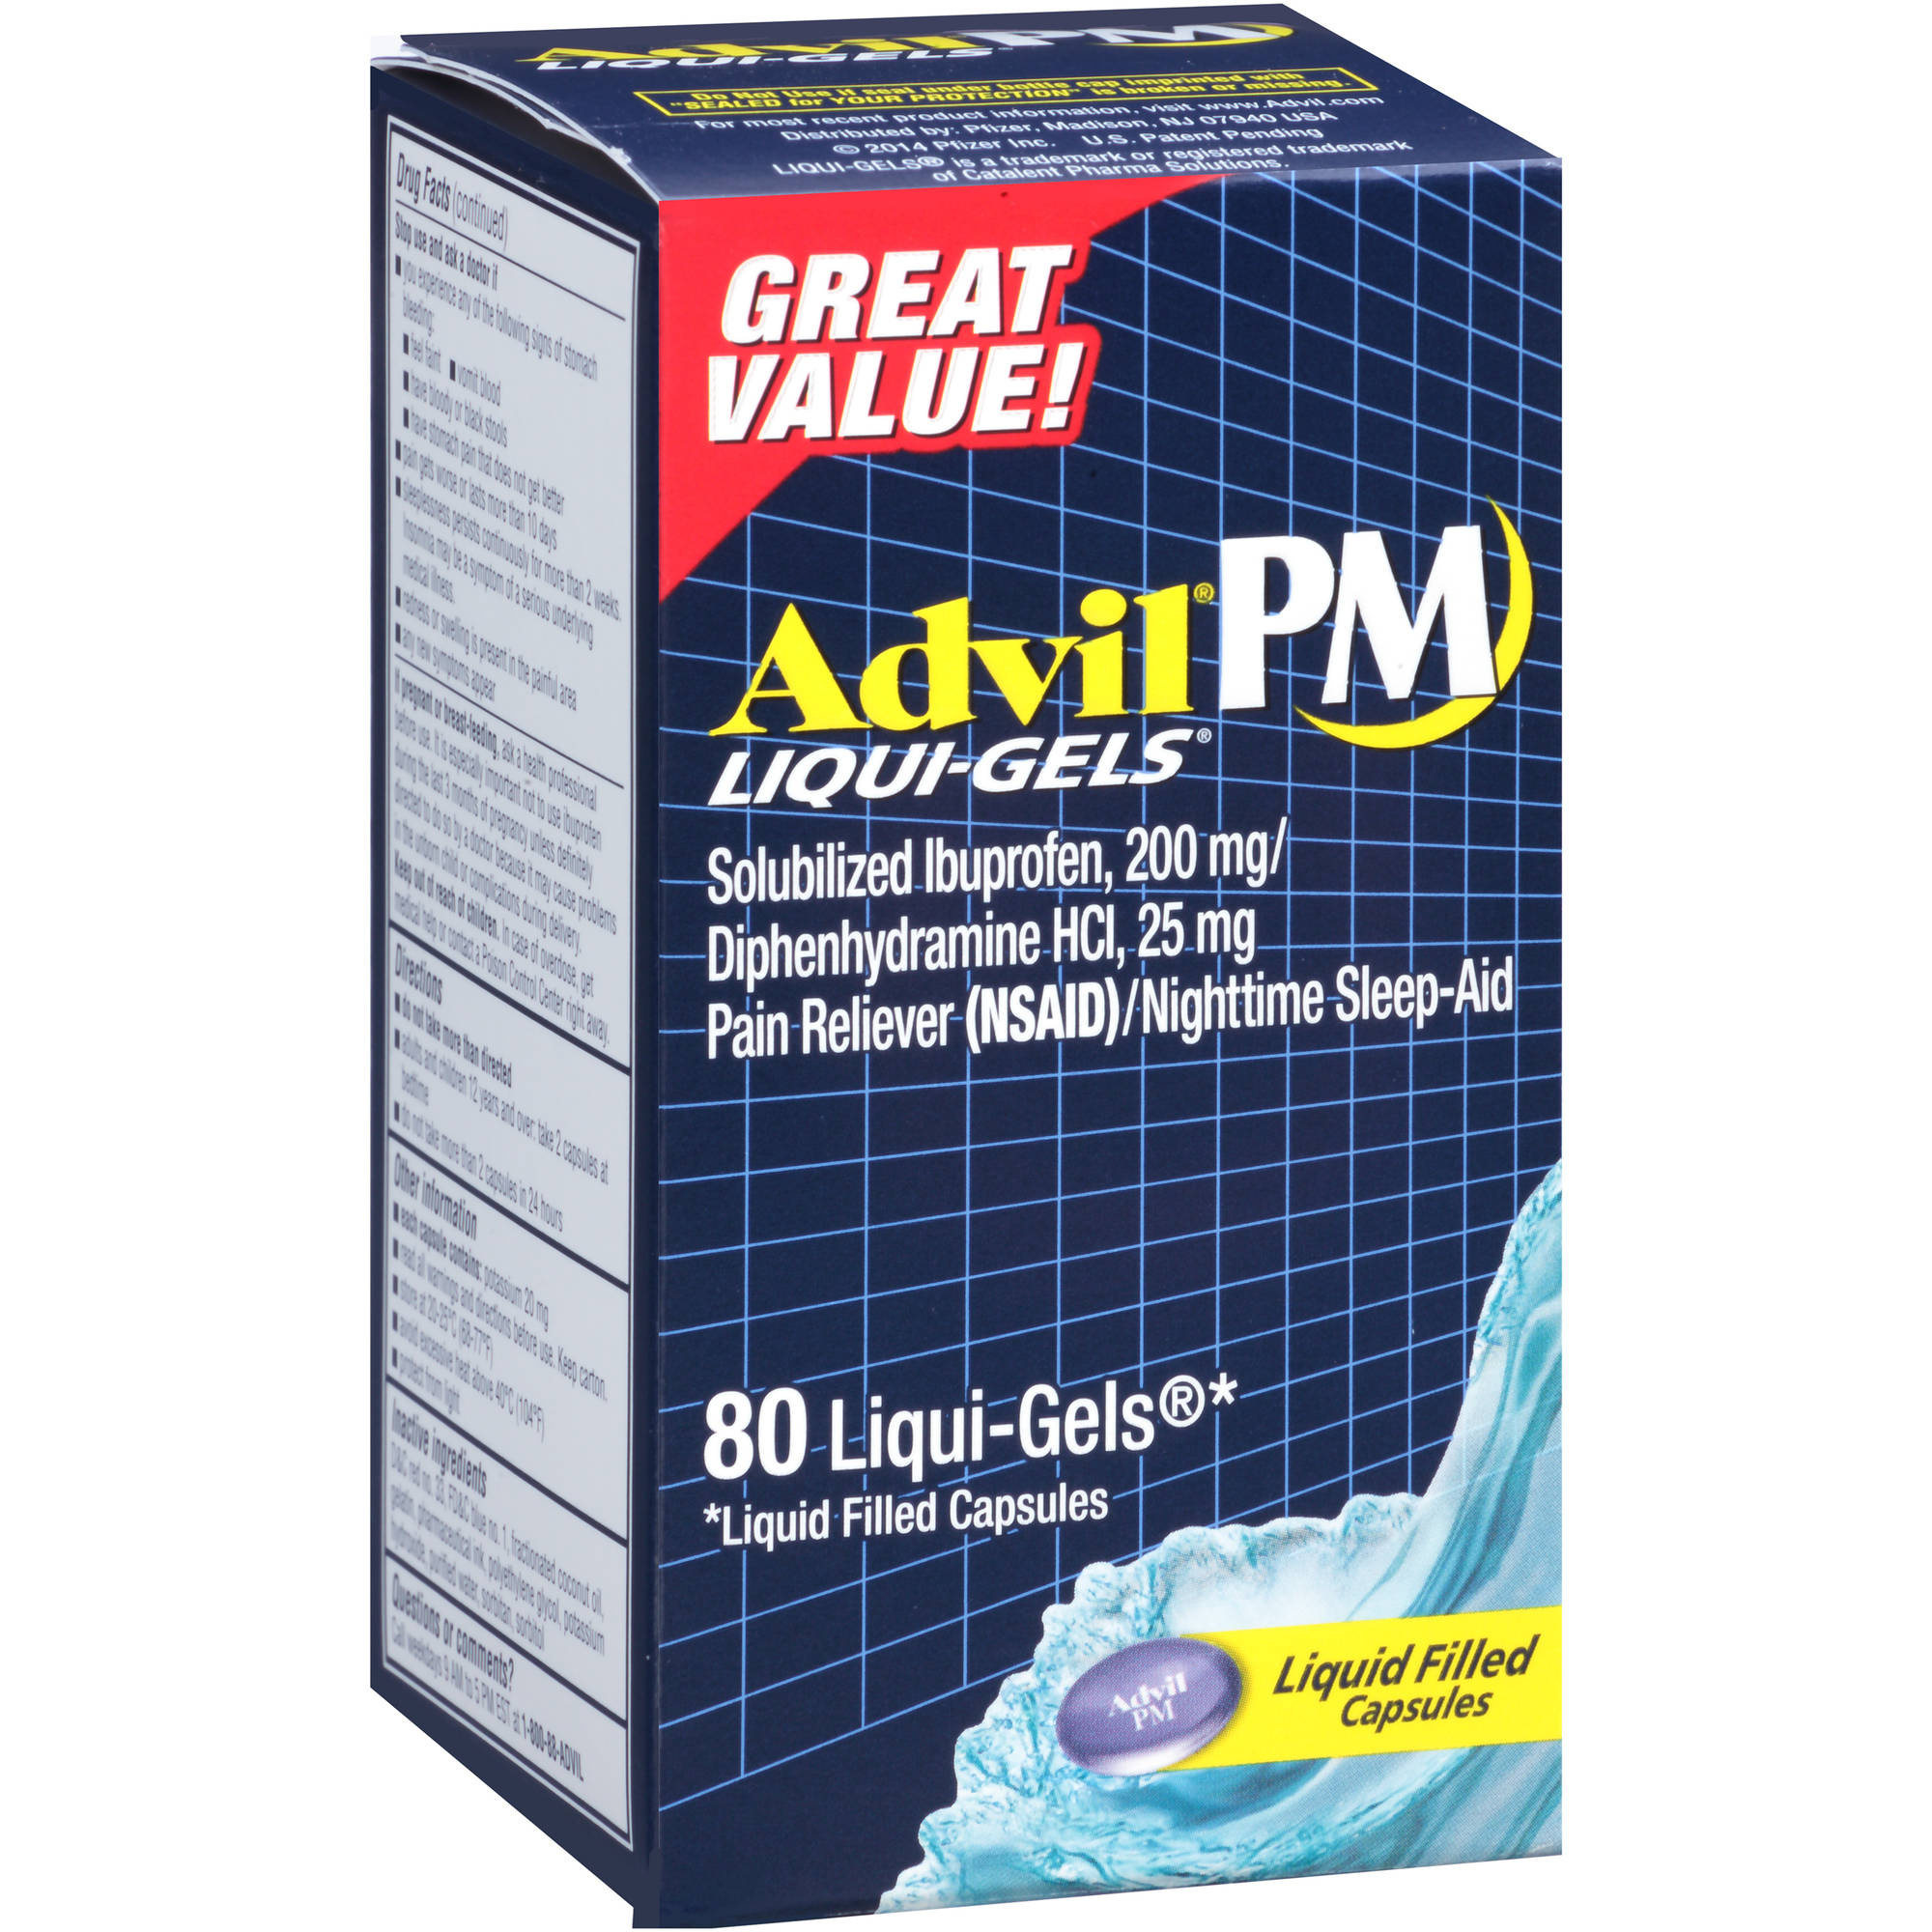 Advil PM Liqui-Gels Pain Reliever / Nighttime Sleep Aid (Ibuprofen and Diphenhydramine)  80 CT